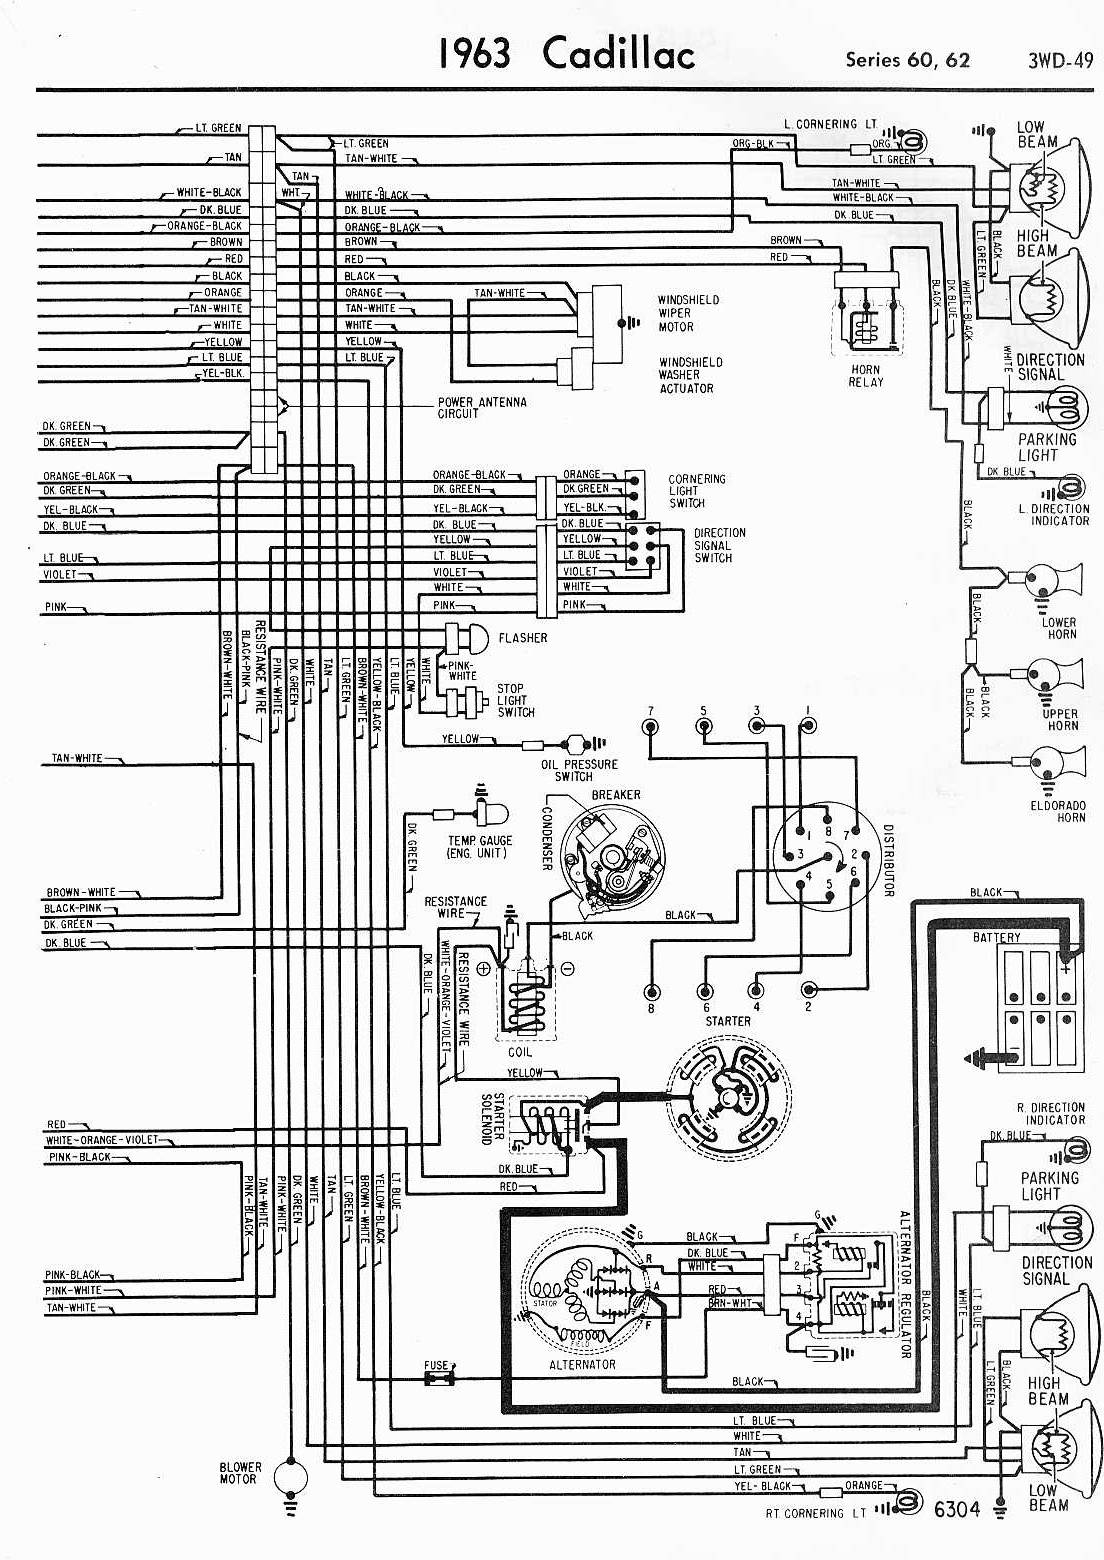 Cadillac Wiring Diagram Diagrams 11796d12469976383wayswitchdiagramschematic3way6lightsjpg Car Manuals Pdf Fault Codes Rh Automotive Net Autozone